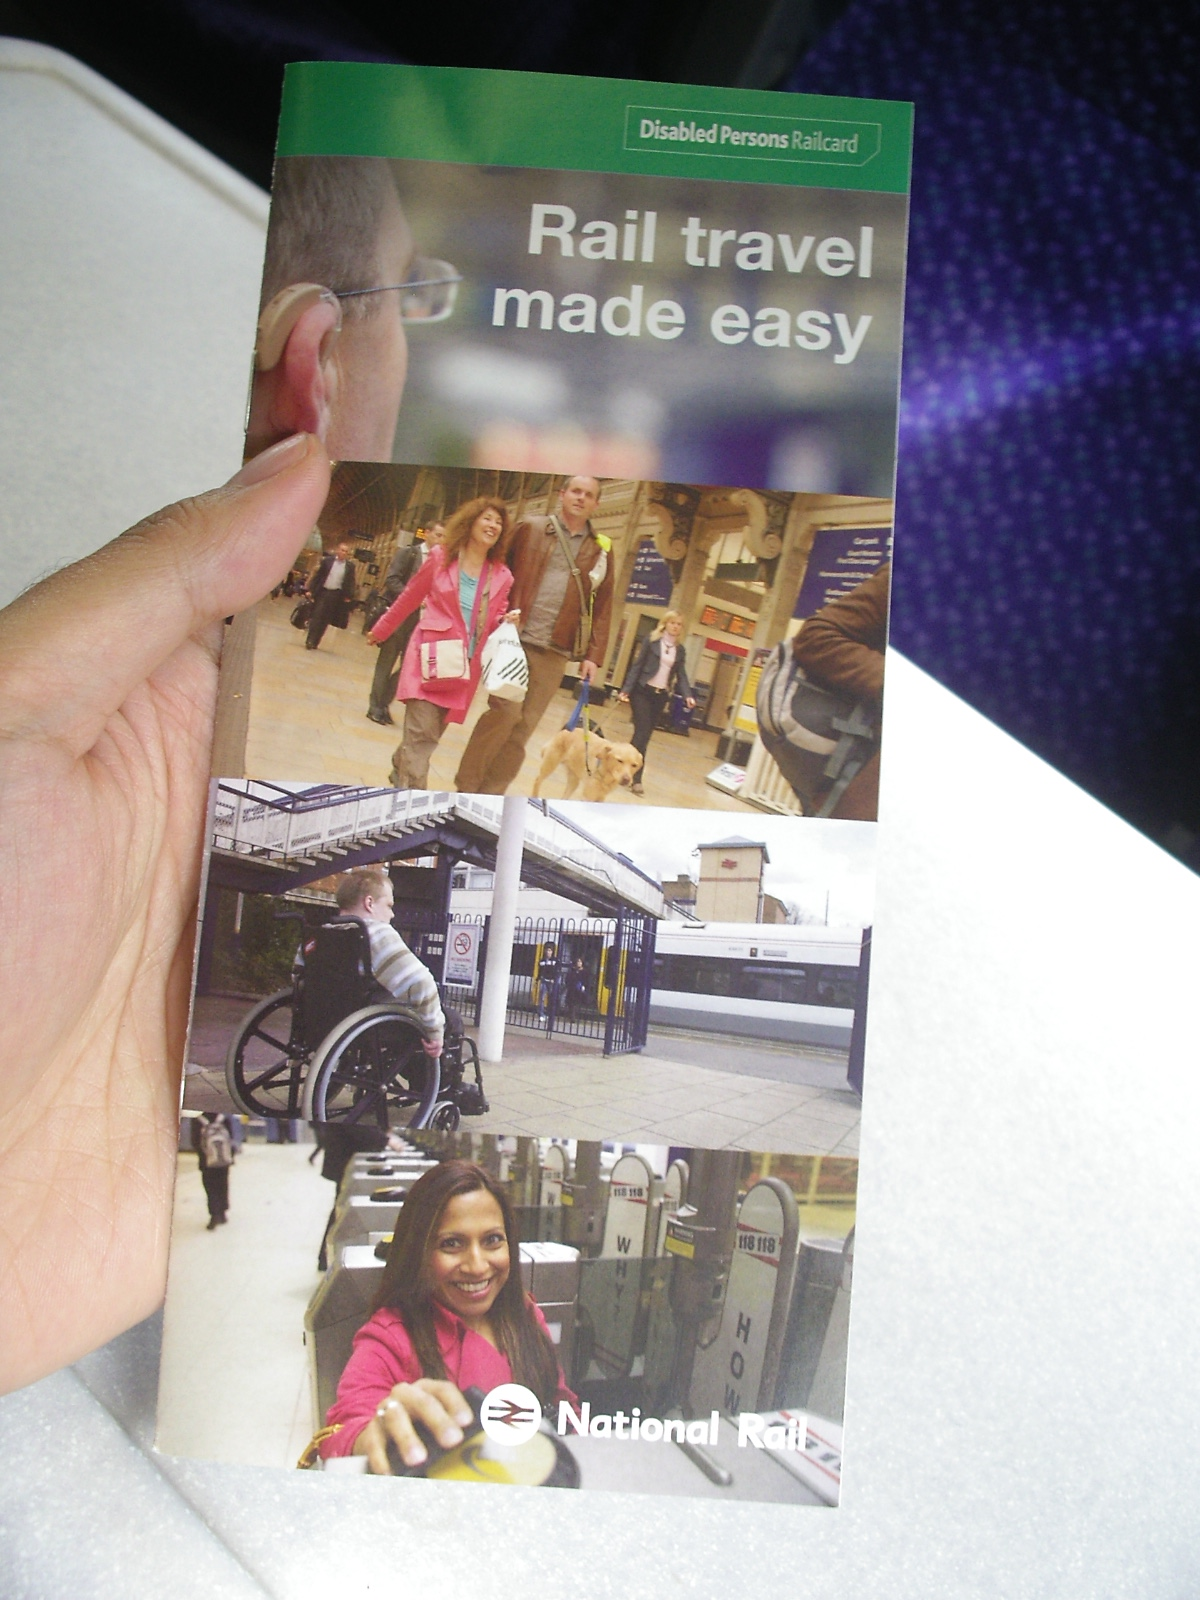 <Disabled Persons Railcard> flyer by UK National Rail